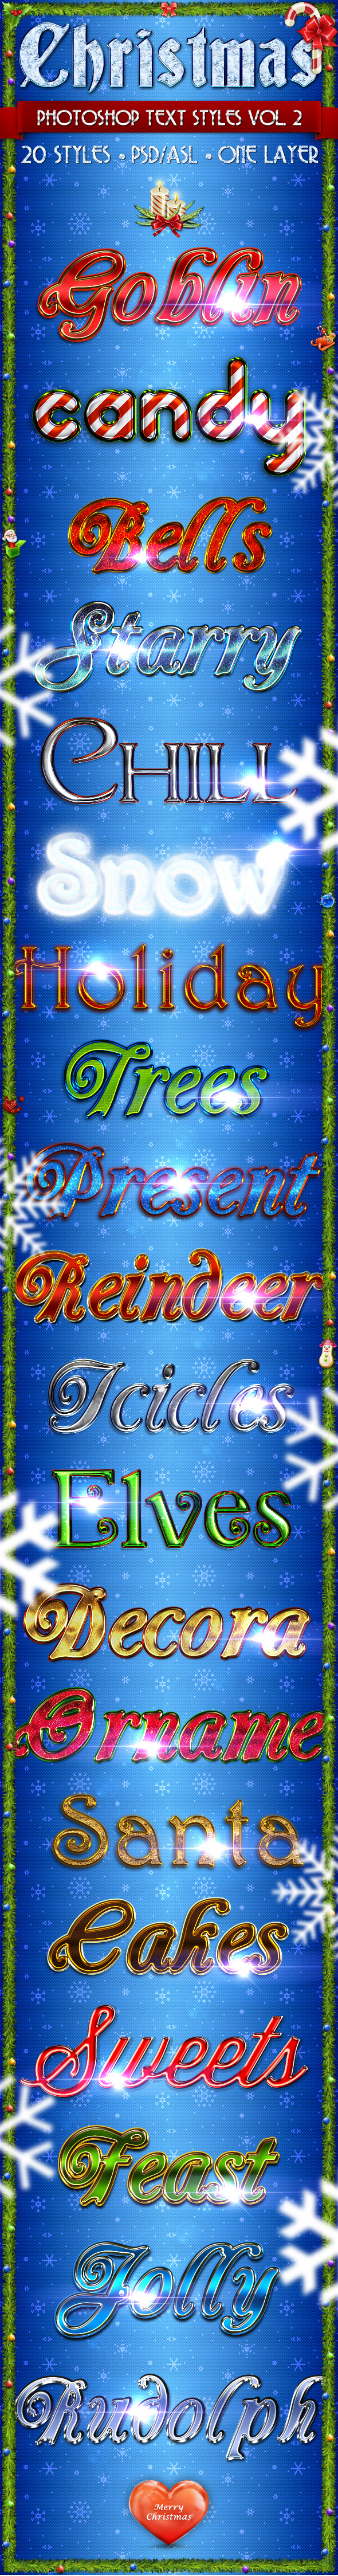 Christmas Vol. 2 - Text Styles - Text Effects Styles